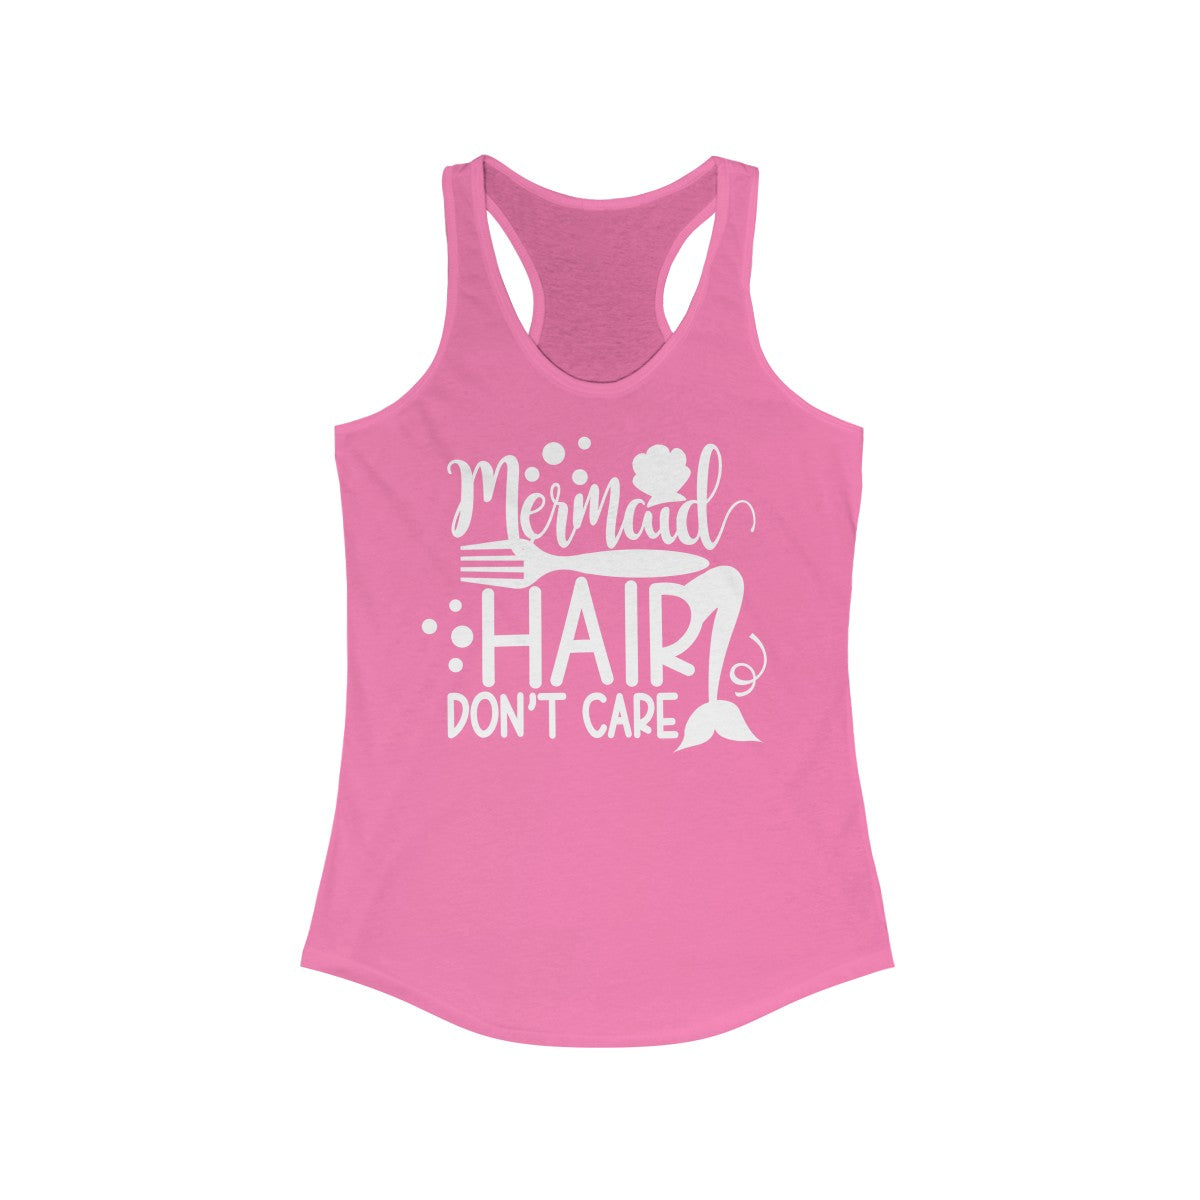 Mermaid Hair Don't Care Women's Ideal Racerback Tank